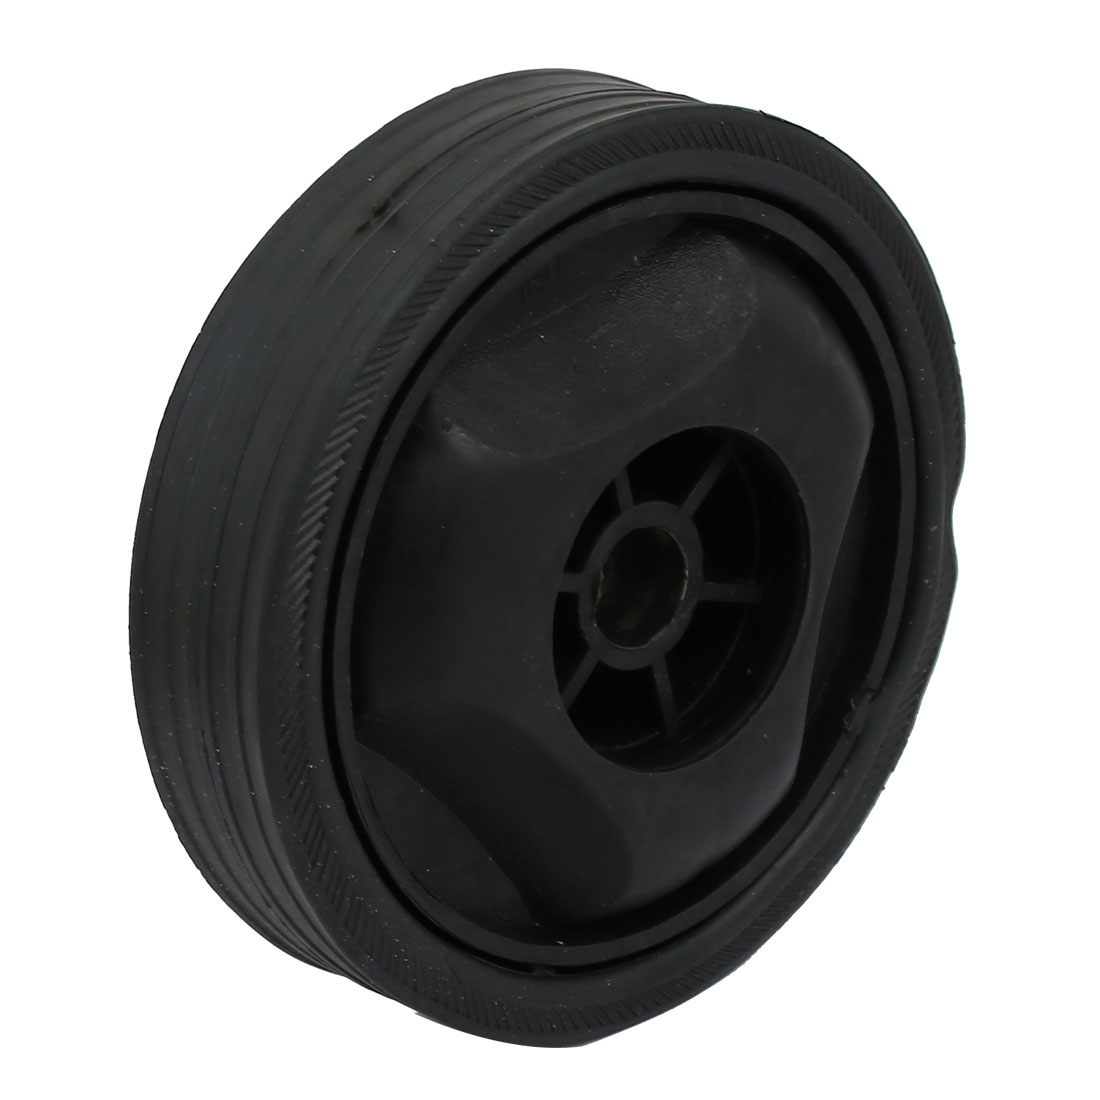 122mm Dia Plastic Replacement Parts Wheel Casters Black for Air Compressor